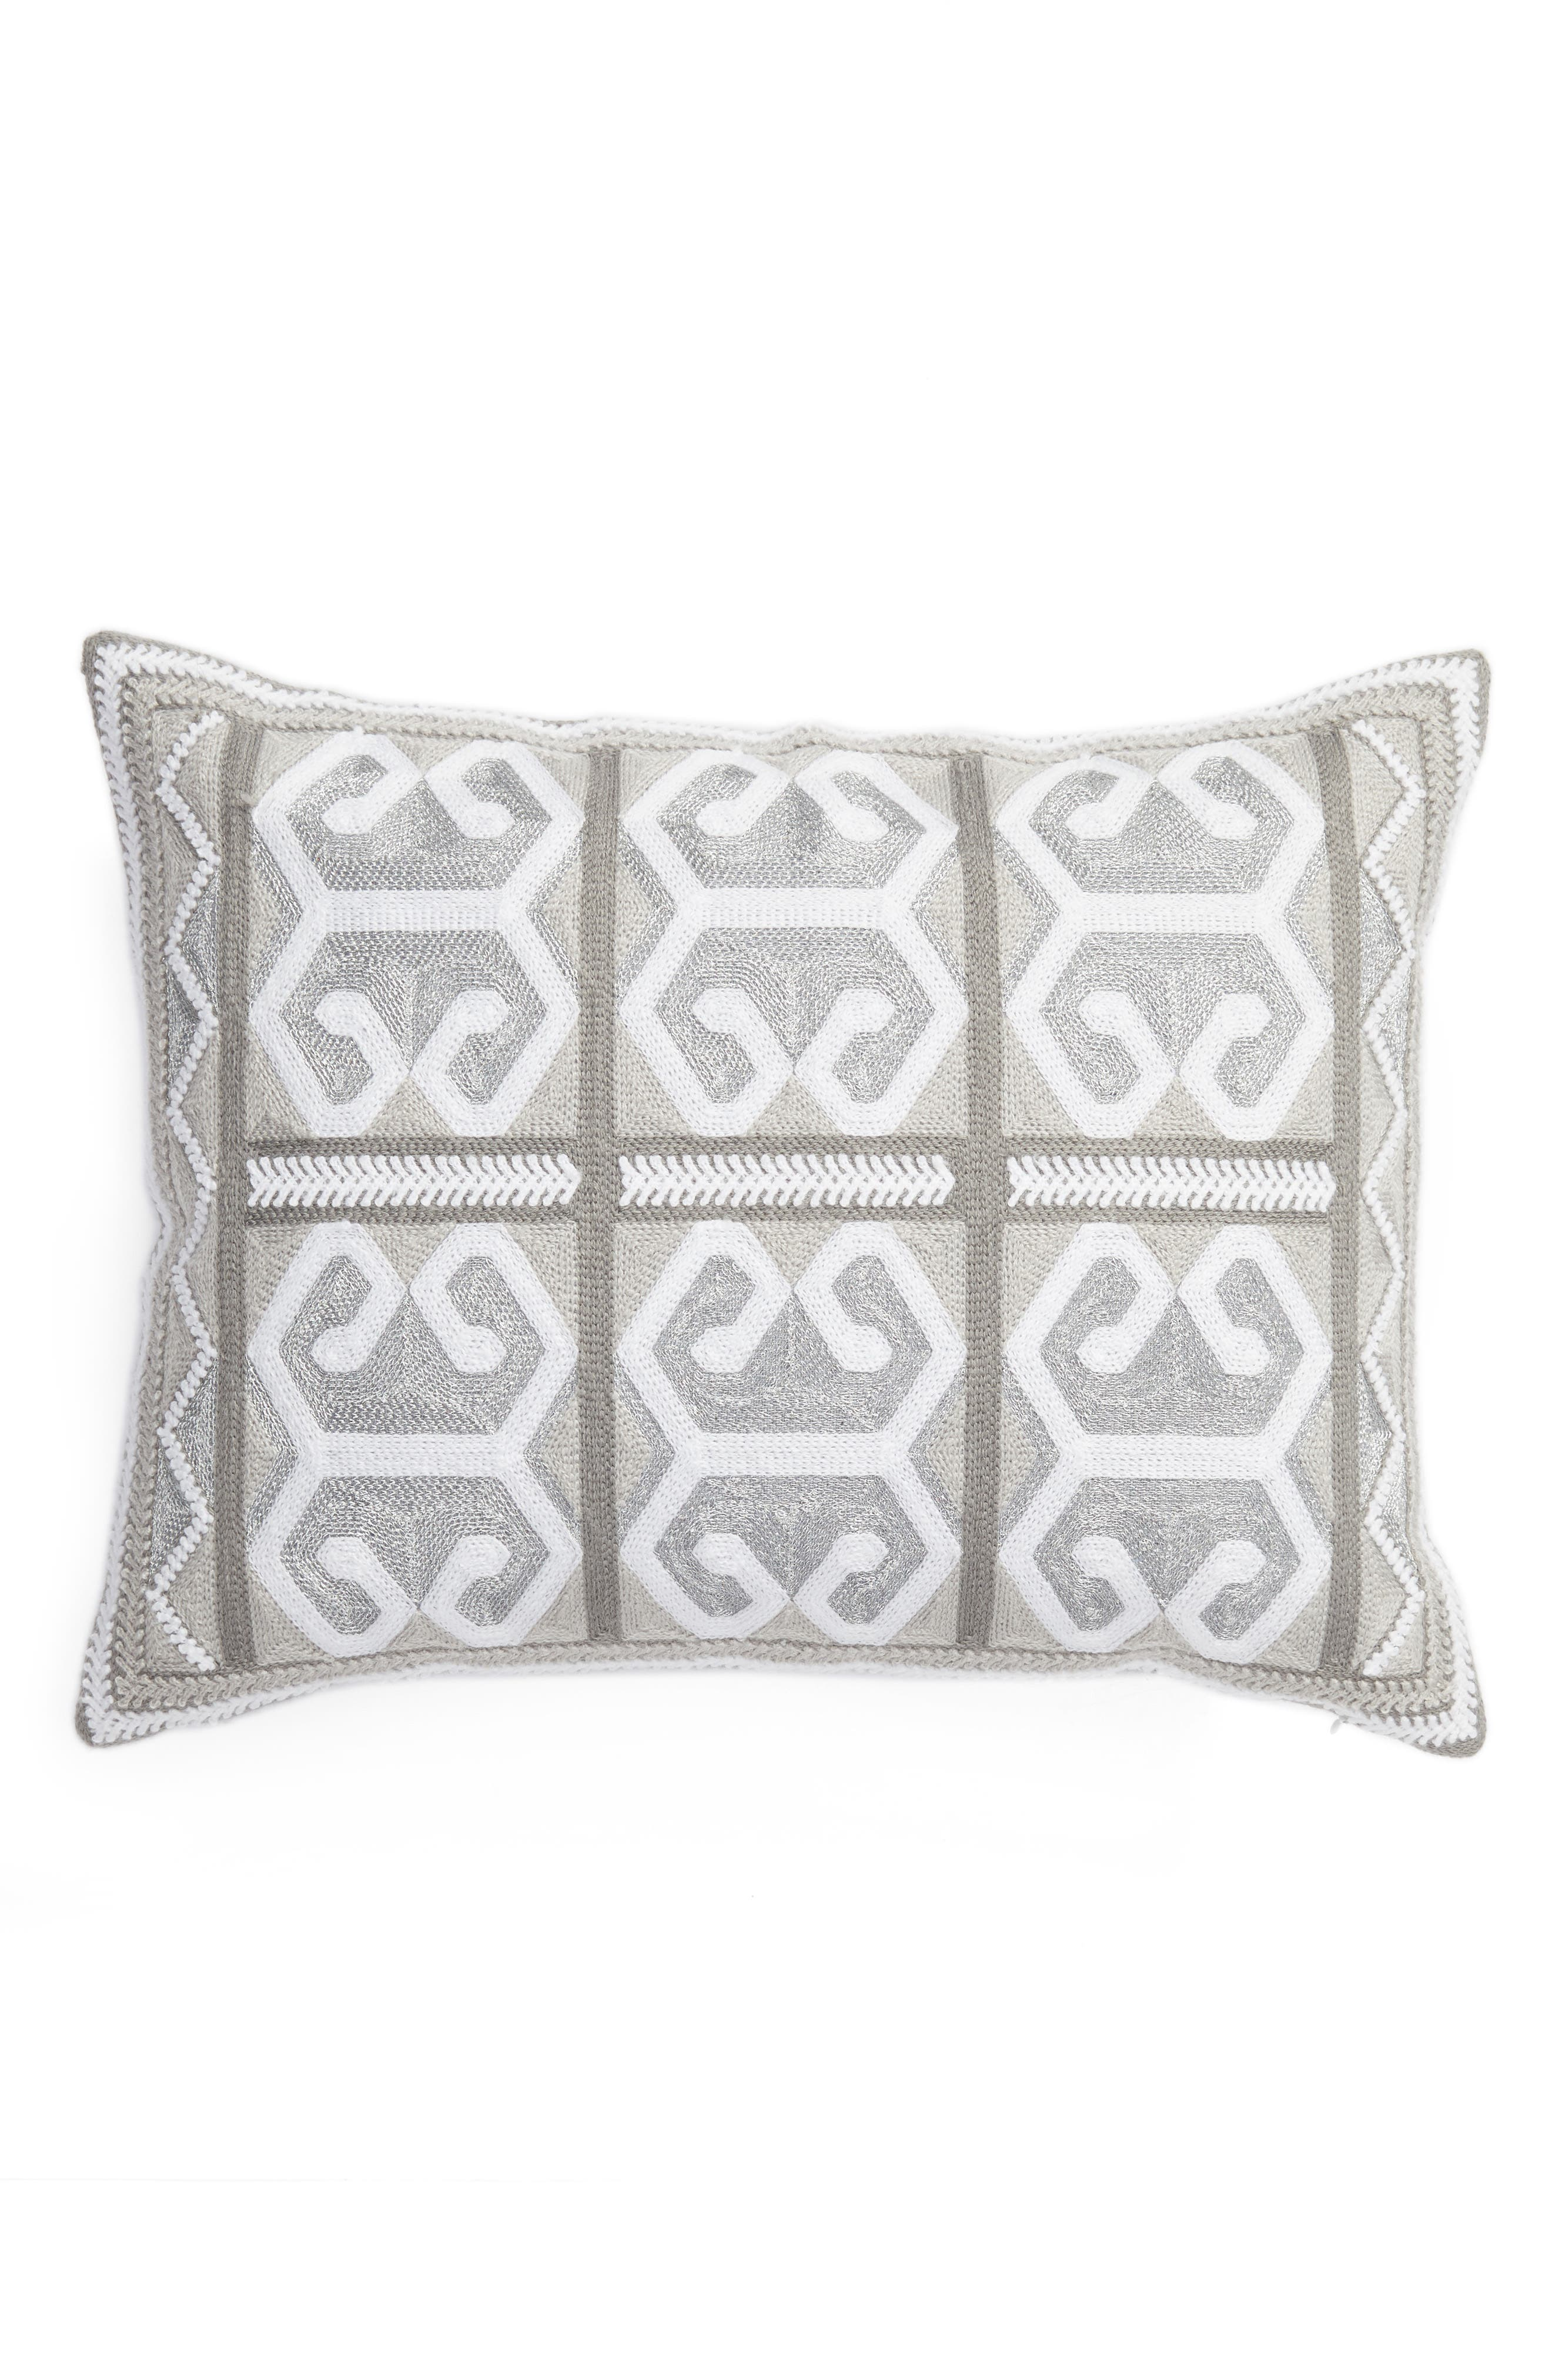 Alternate Image 1 Selected - Levtex Caleb Crewel Stitch Accent Pillow